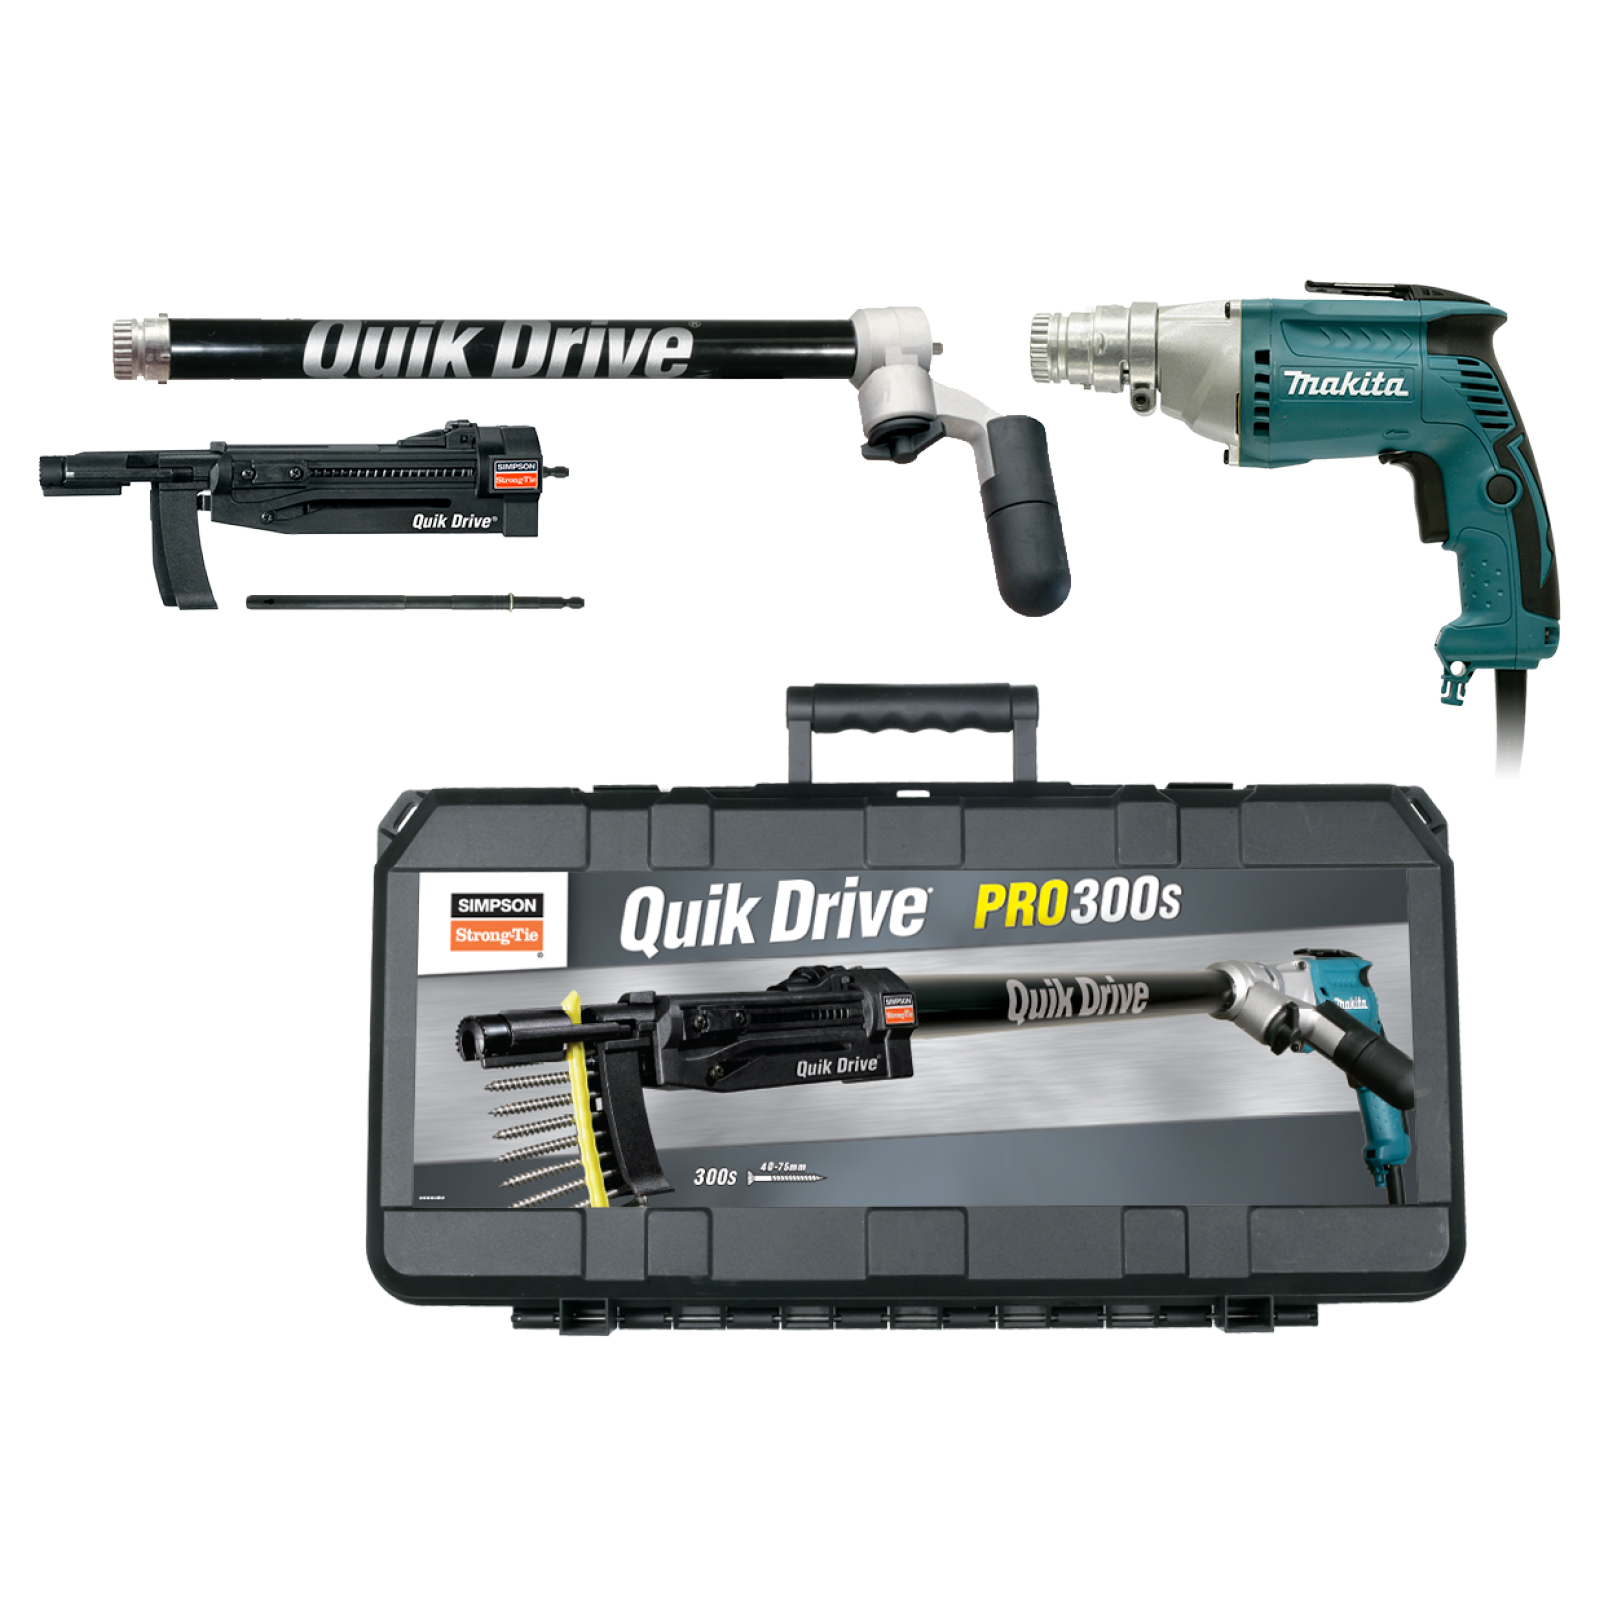 Simpson Strong-Tie Quik Drive PRO300 Auto-Feed Screw Driving System With Makita Screw Gun